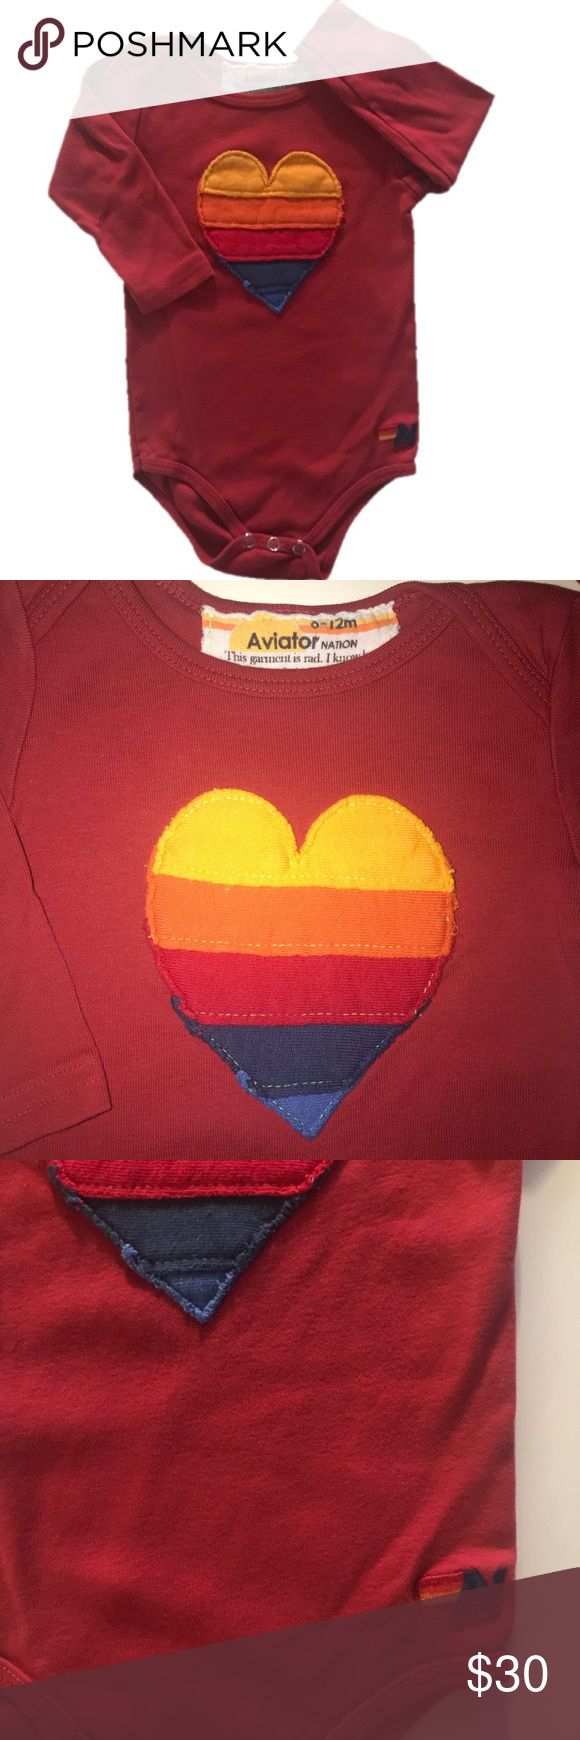 ⭐️ Aviator Nation 6-12mo Heart Onesie One Piece Aviator Nation 6-12mo Heart Onesie One Piece. Adorable! Color is a tomato soup red and comes with store bought distressing in the heart and colors. This is a timeless onesie from an amazing brand. In overall very good used condition. (Bag 187) Aviator Nation One Pieces Bodysuits